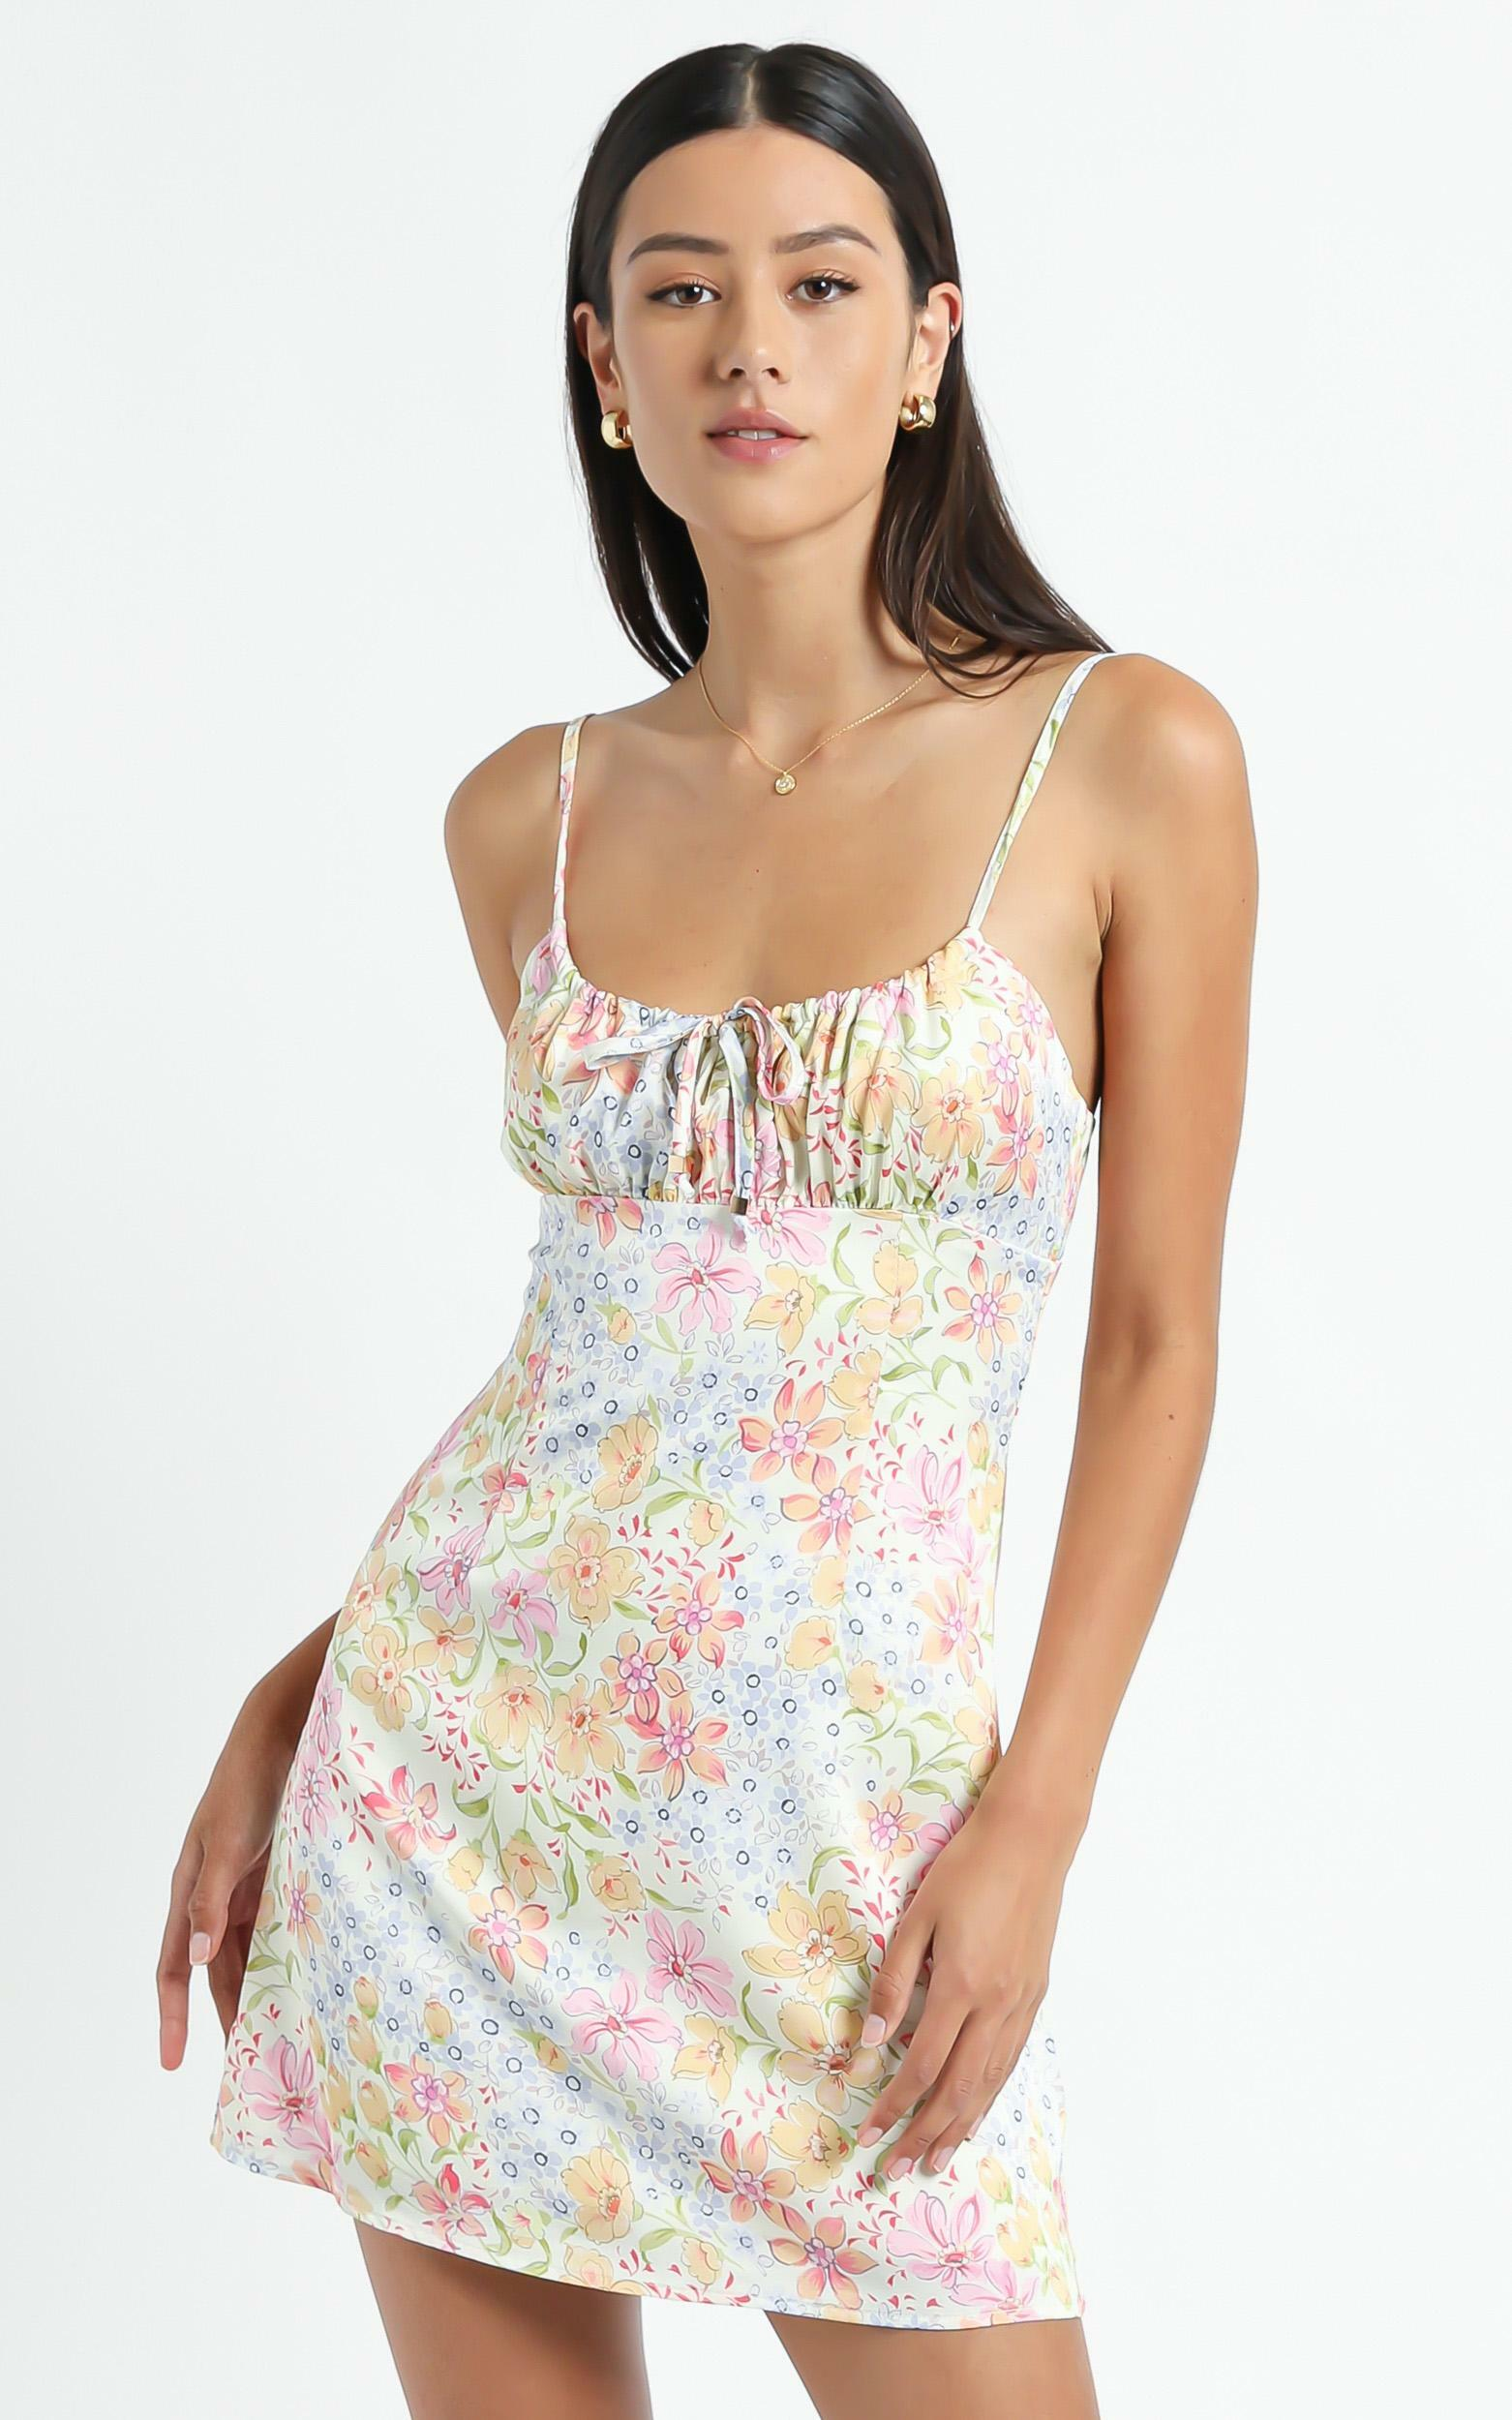 Ive Got You Now Dress in Multi Floral - 8 (S), CRE1, hi-res image number null